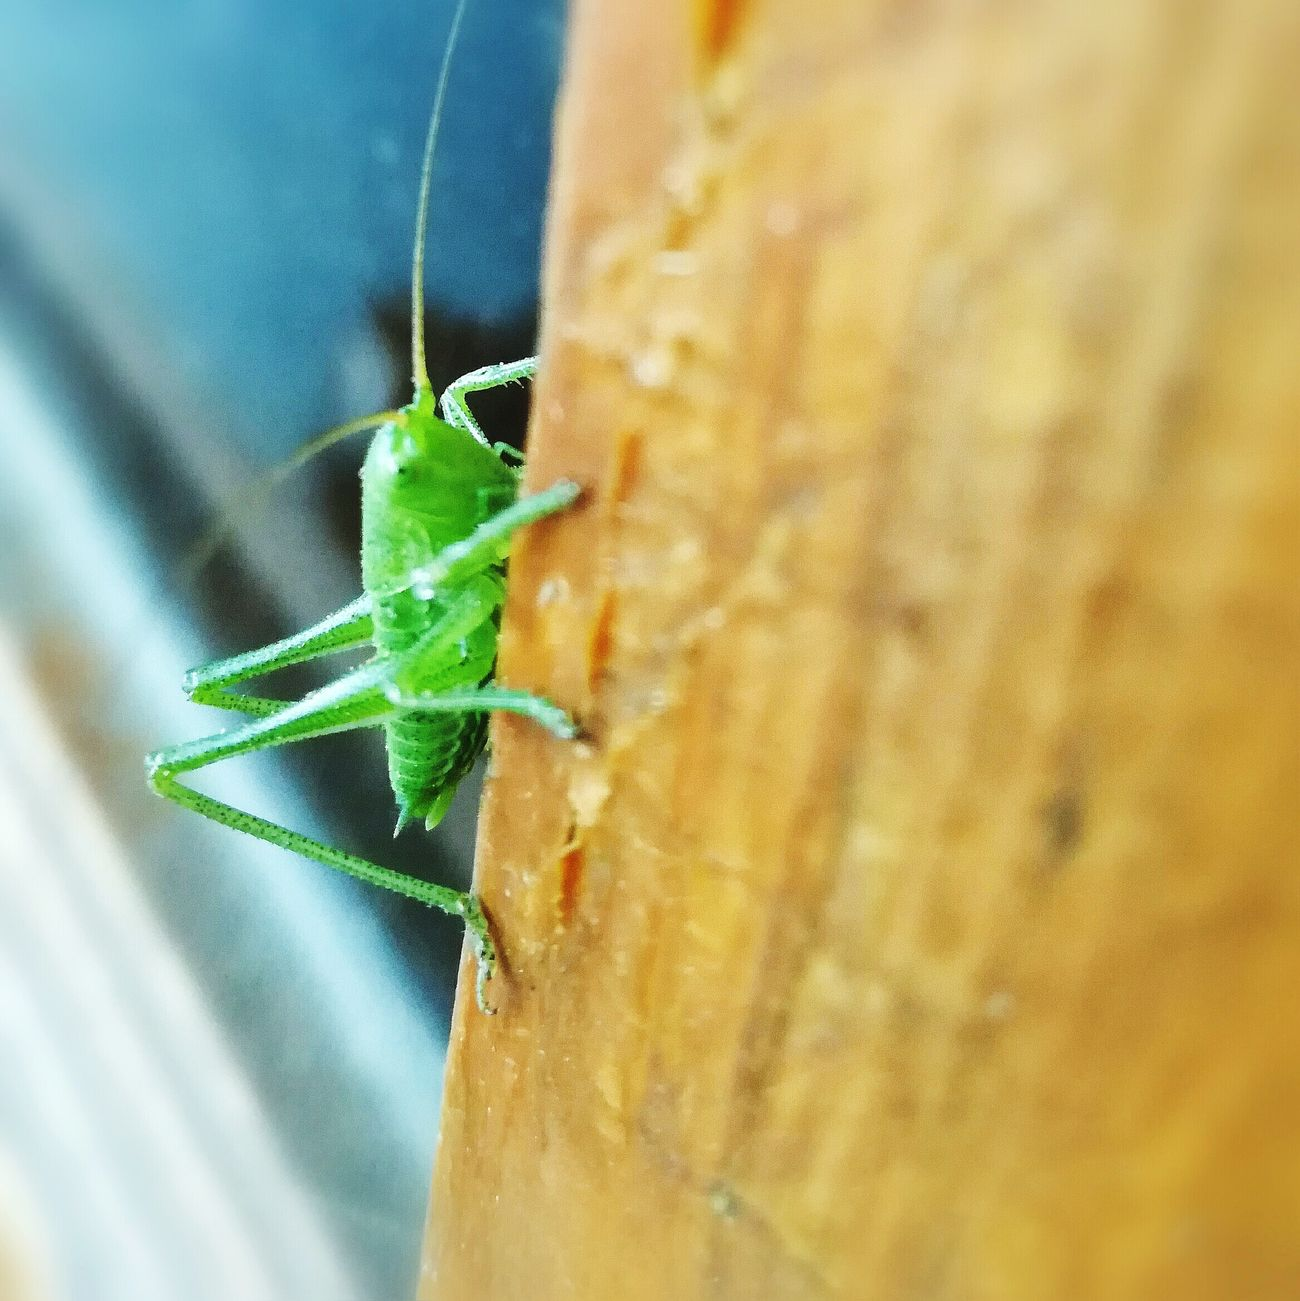 Animals In The Wild One Animal Animal Wildlife Animal Themes Close-up Insect No People Day Nature Outdoors Crickets Insects  Insects  Insects  Green Close Up Closeup Animal